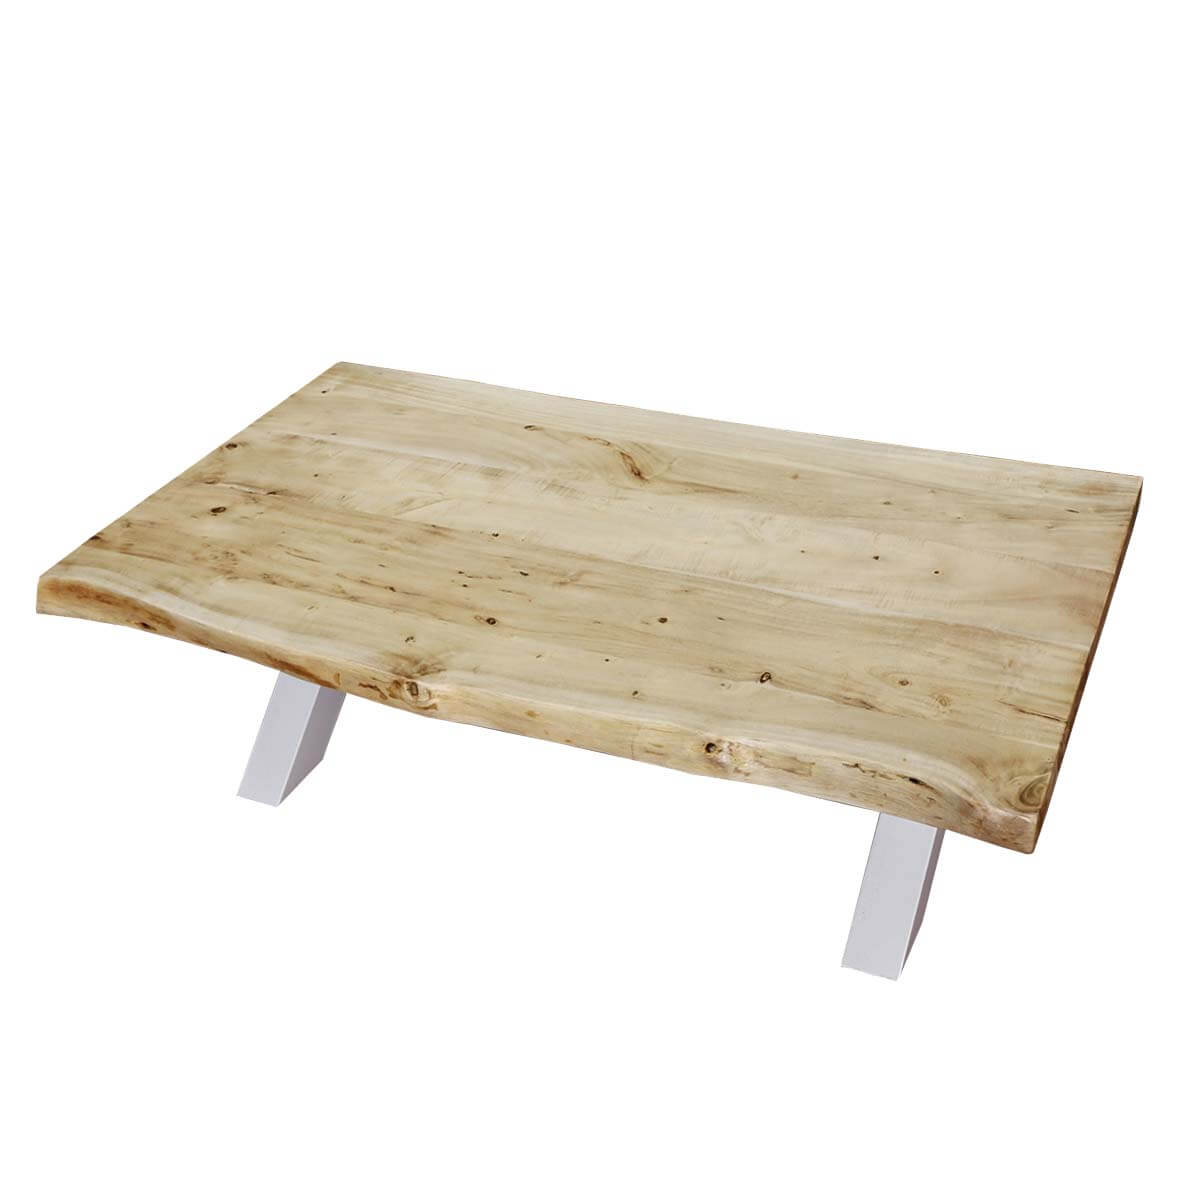 Picnic Style Acacia Wood Iron 51 Live Edge Coffee Table